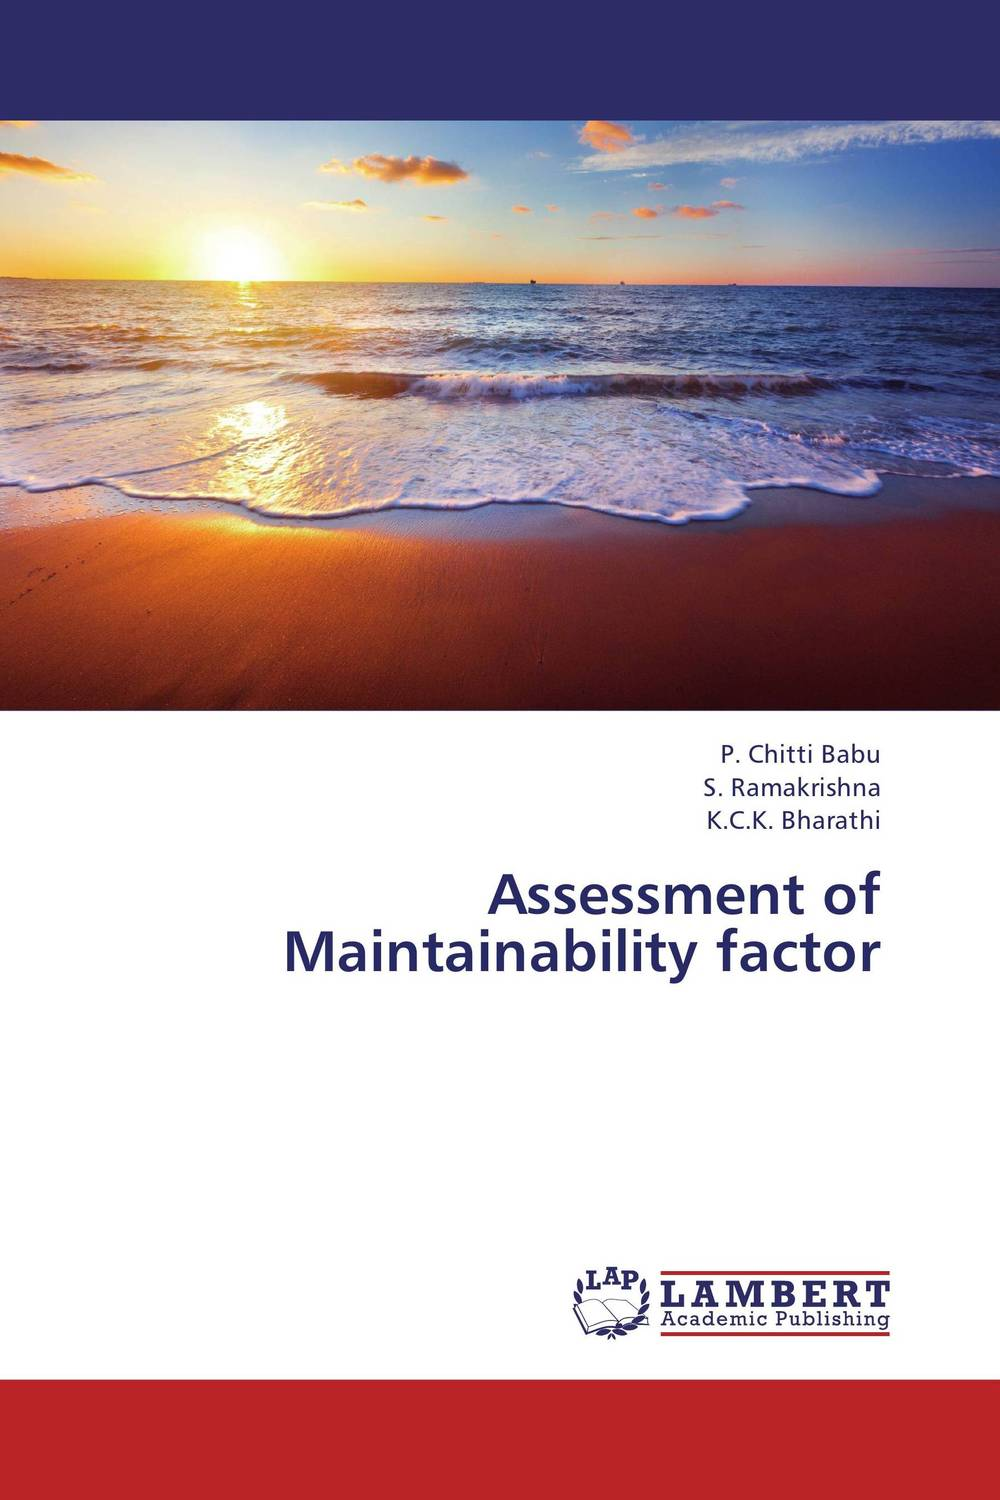 Assessment of Maintainability factor integrated modelling and assessment systems